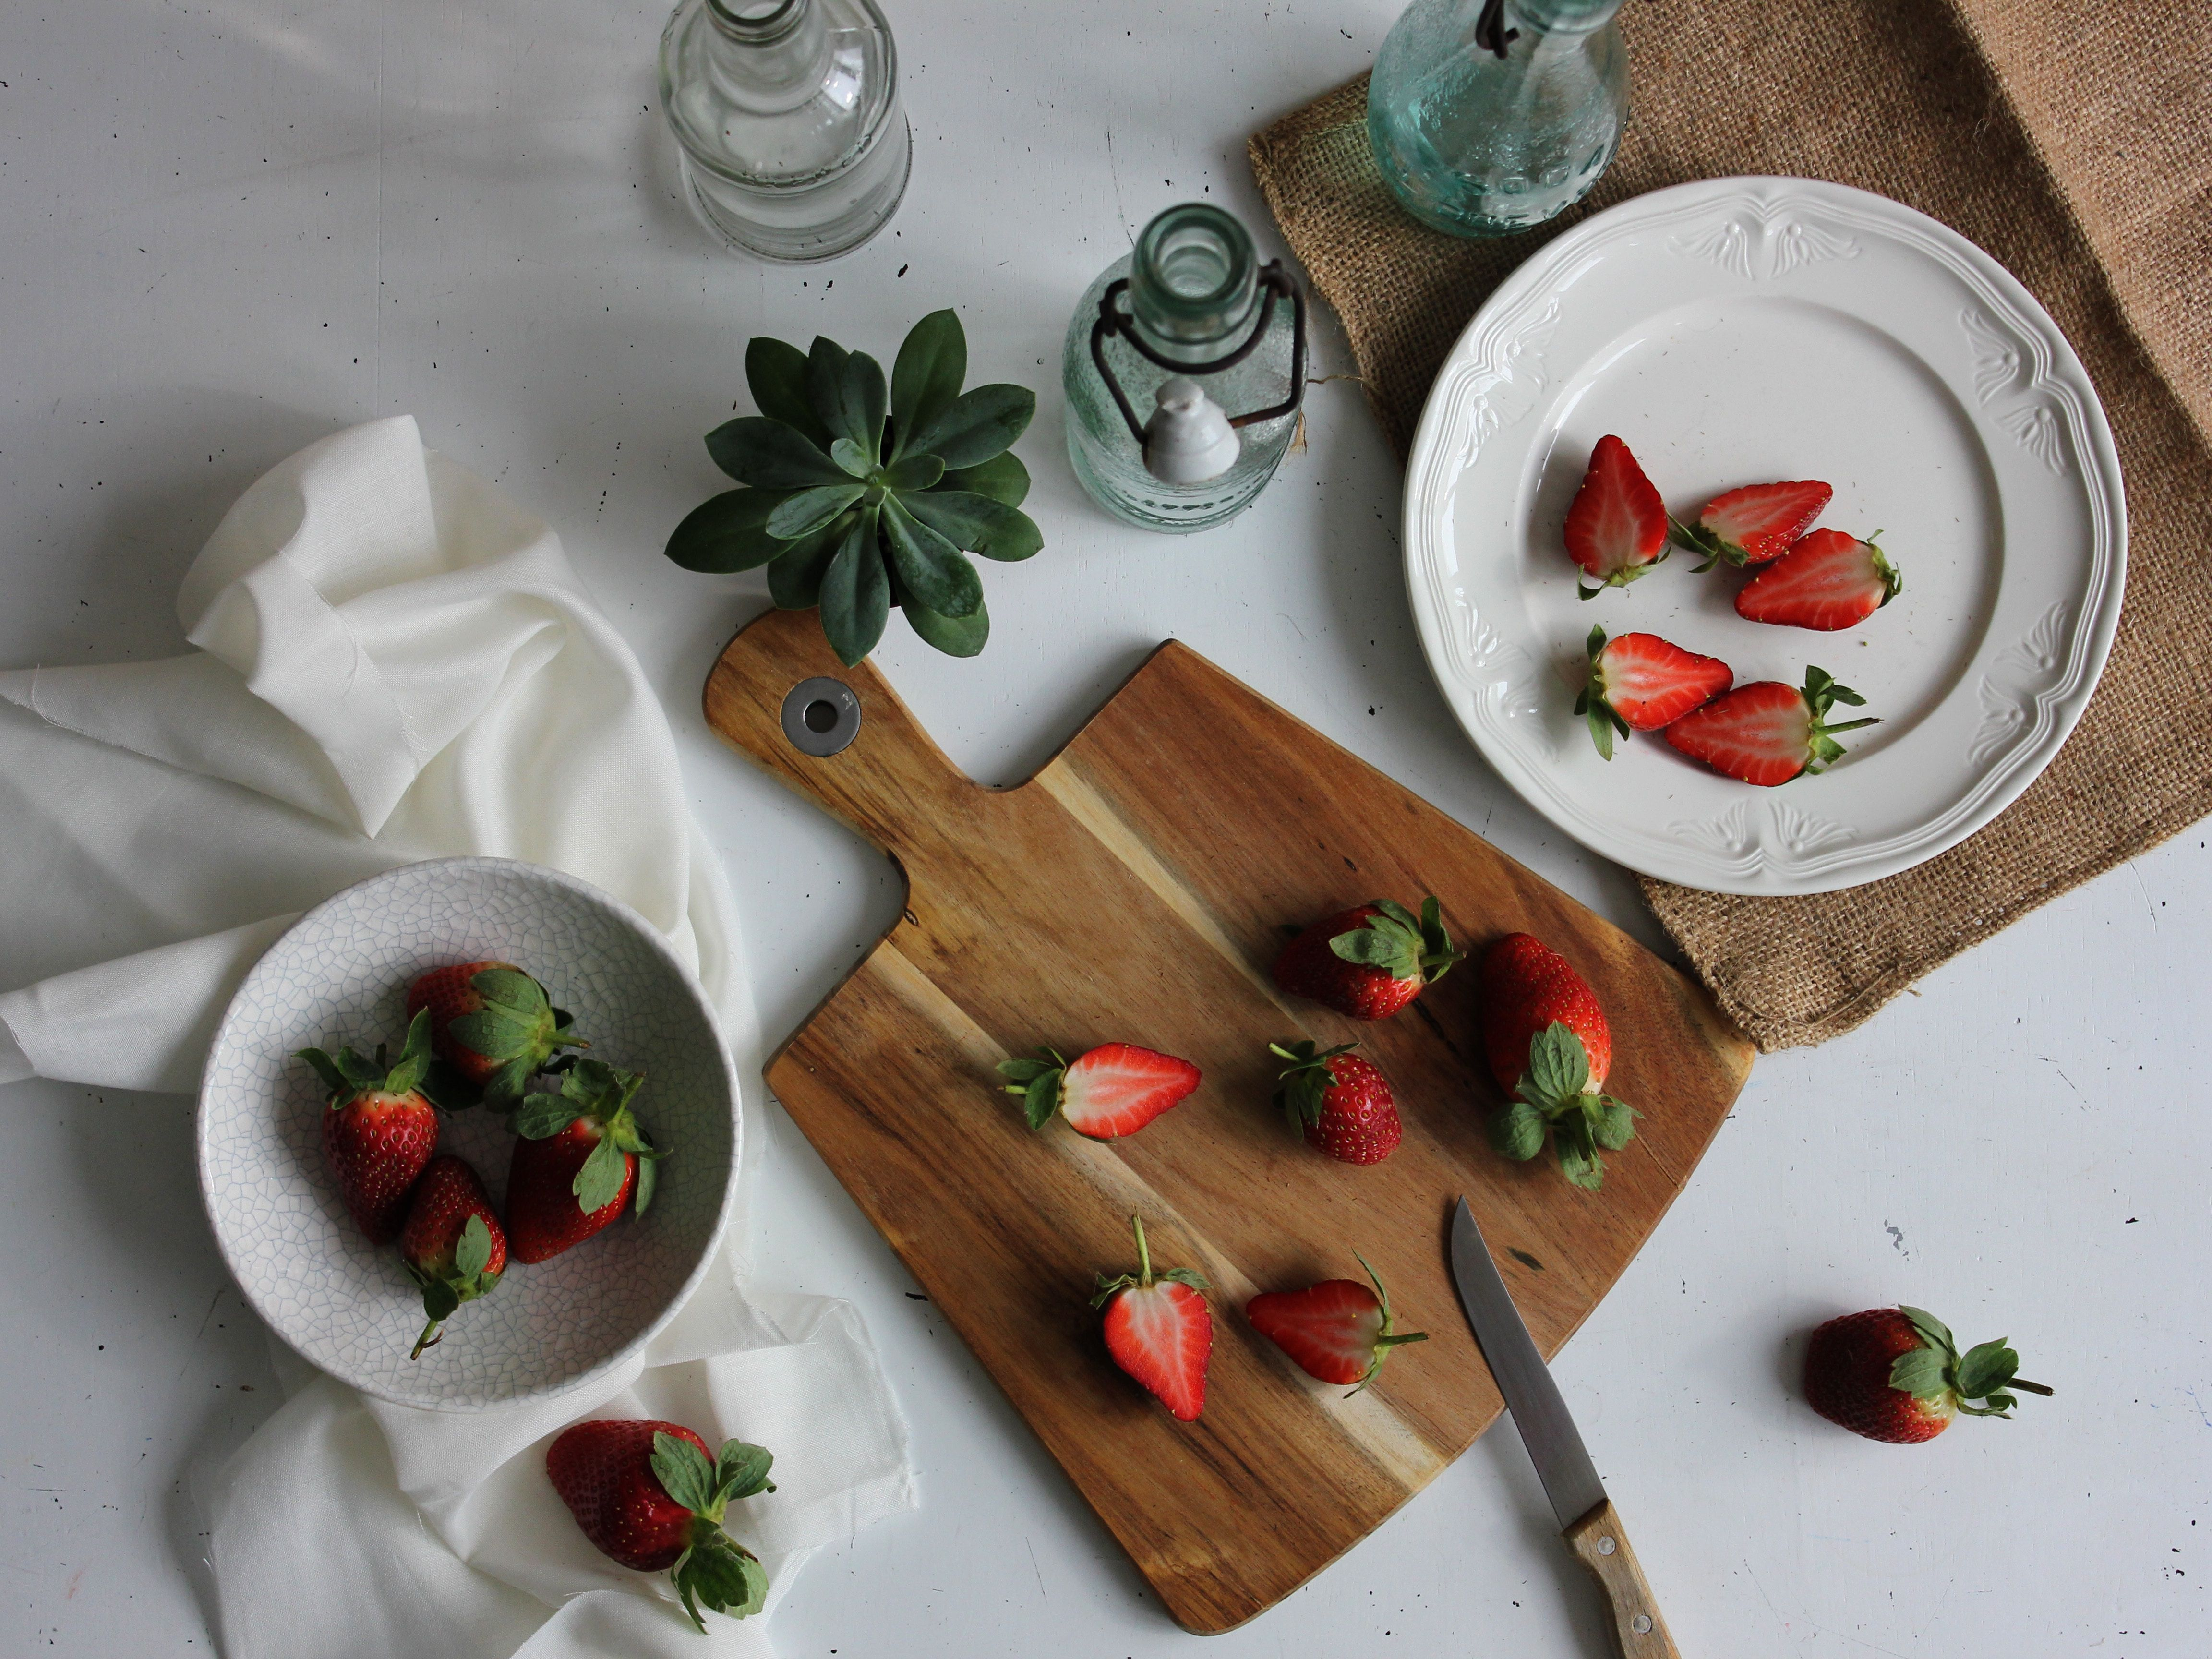 Diy Strawberry Face Mask Recipes